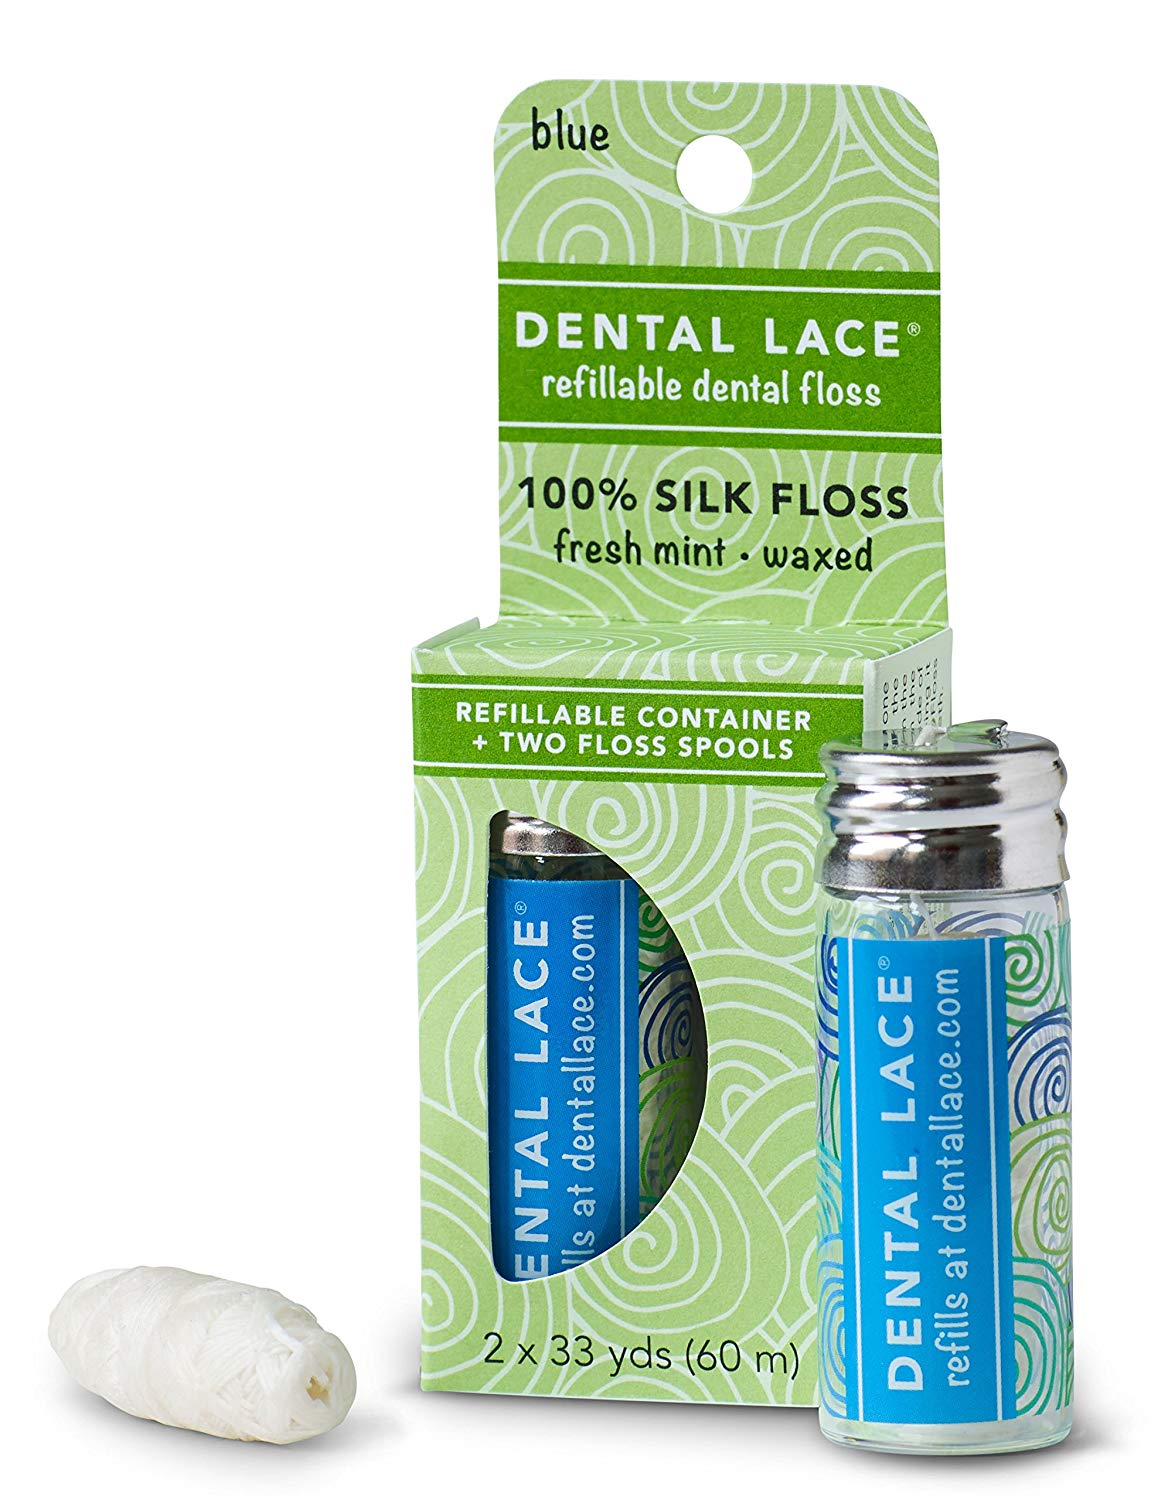 Dental Lace Silk Dental Floss with Natural Mint Flavoring with 1 Dispenser and 2 Floss Spools